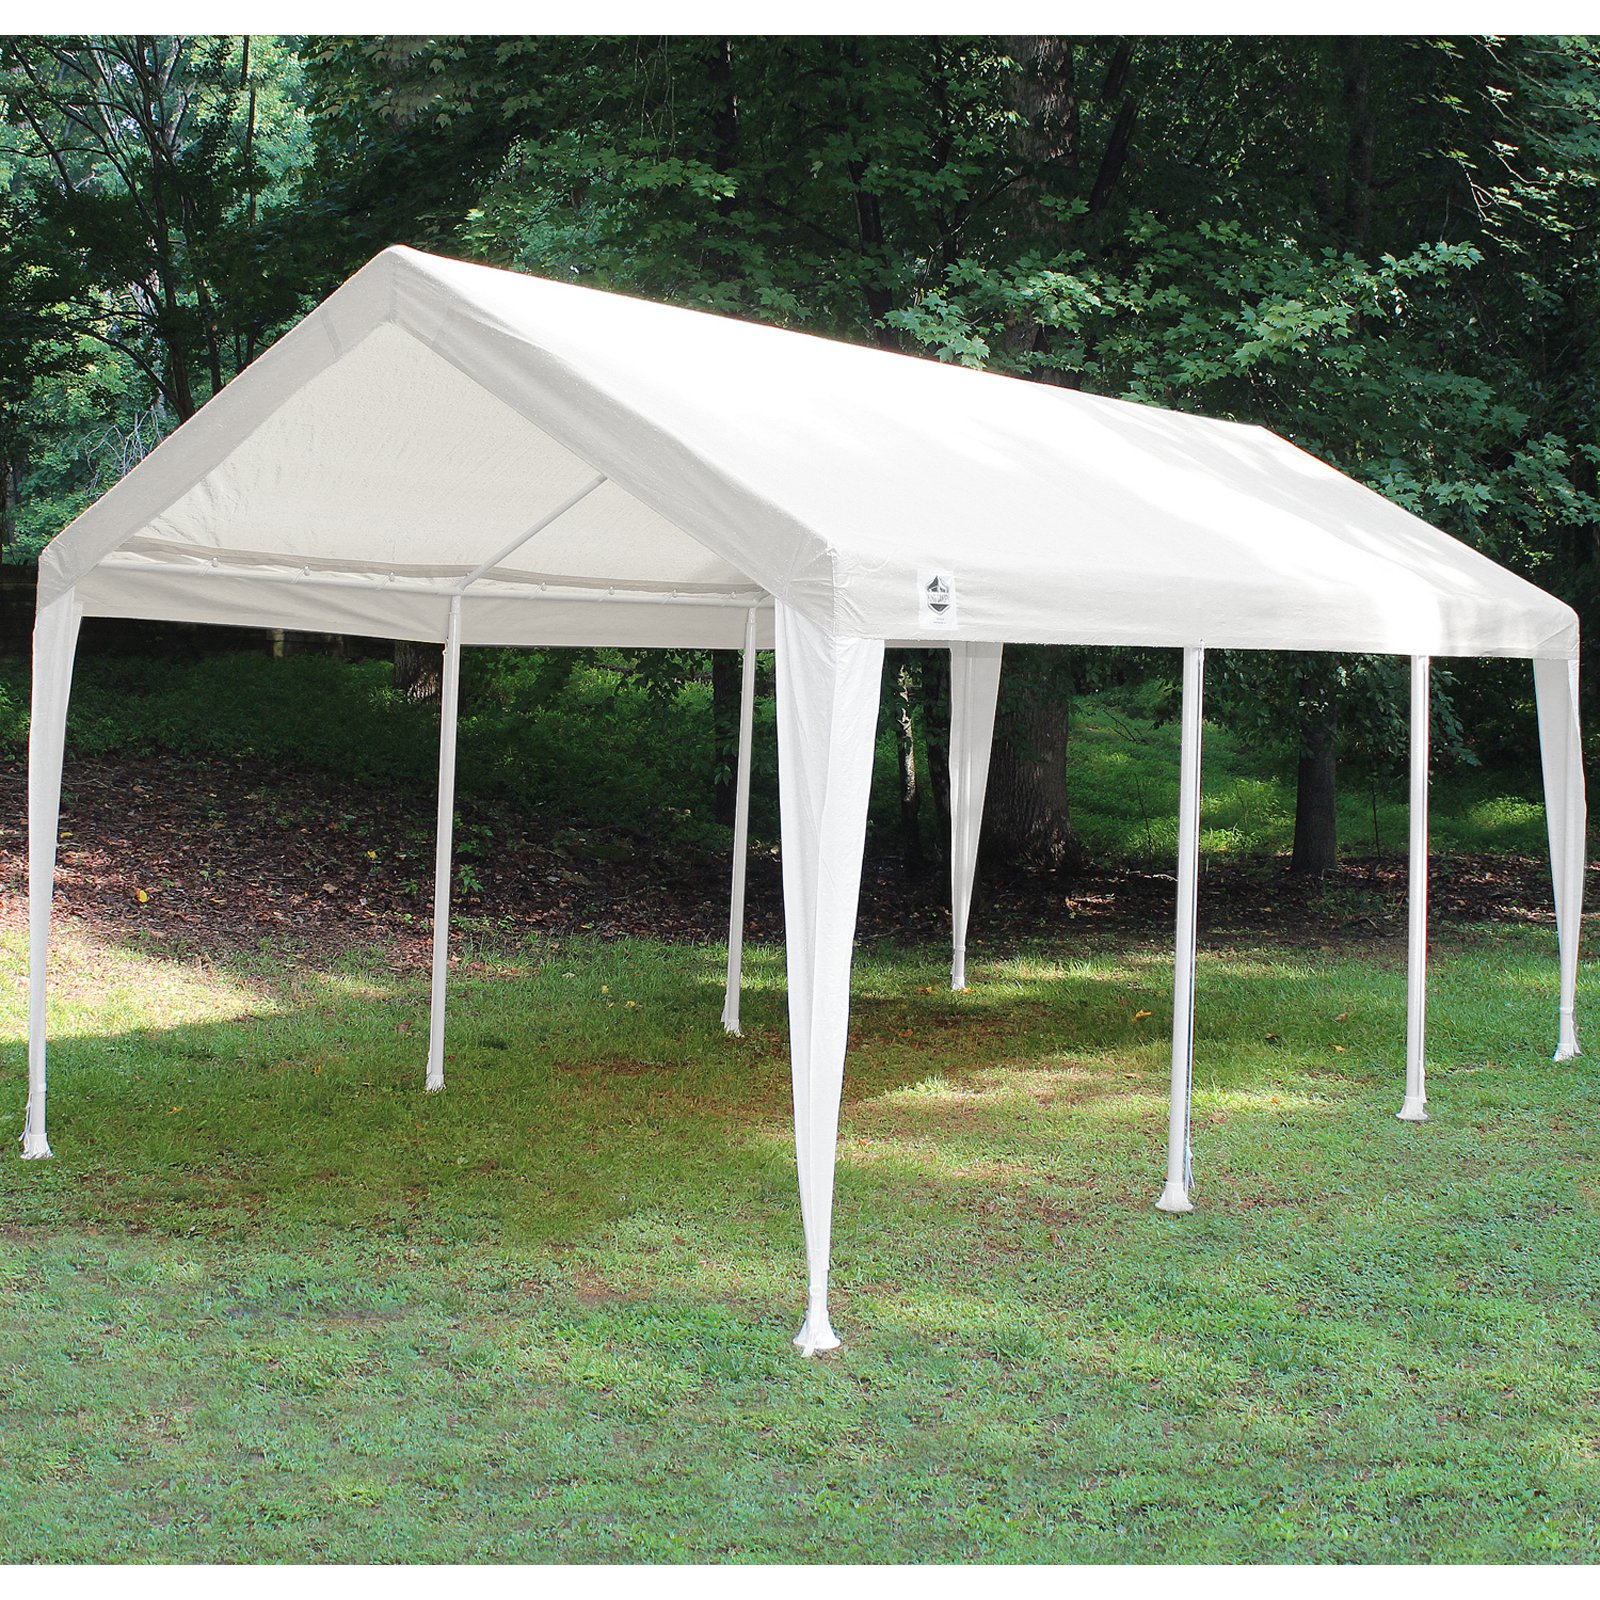 King Canopy Titan 10 x 20 ft  Canopy Replacement Cover - White